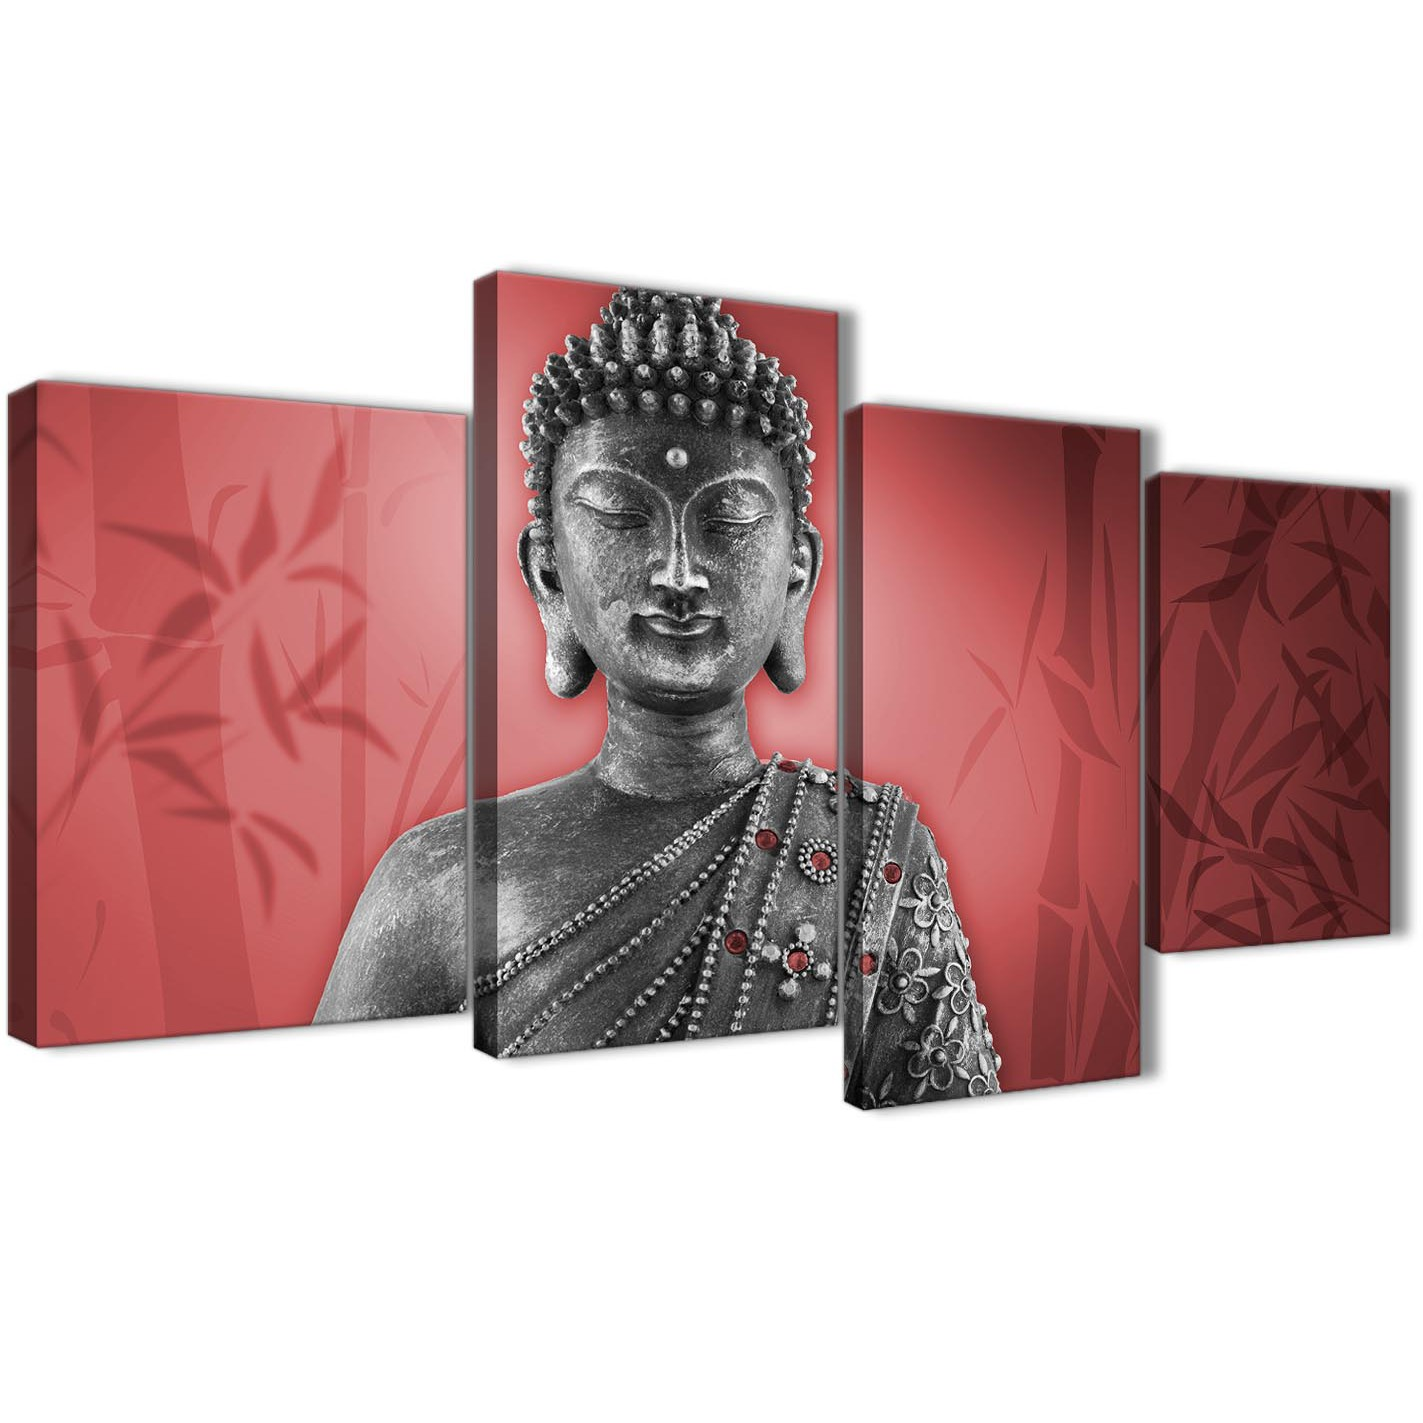 Oversized Large Red And Grey Silver Wall Art Prints Of Buddha Canvas Split  4 Piece 4331 Display Gallery Item 1 ...